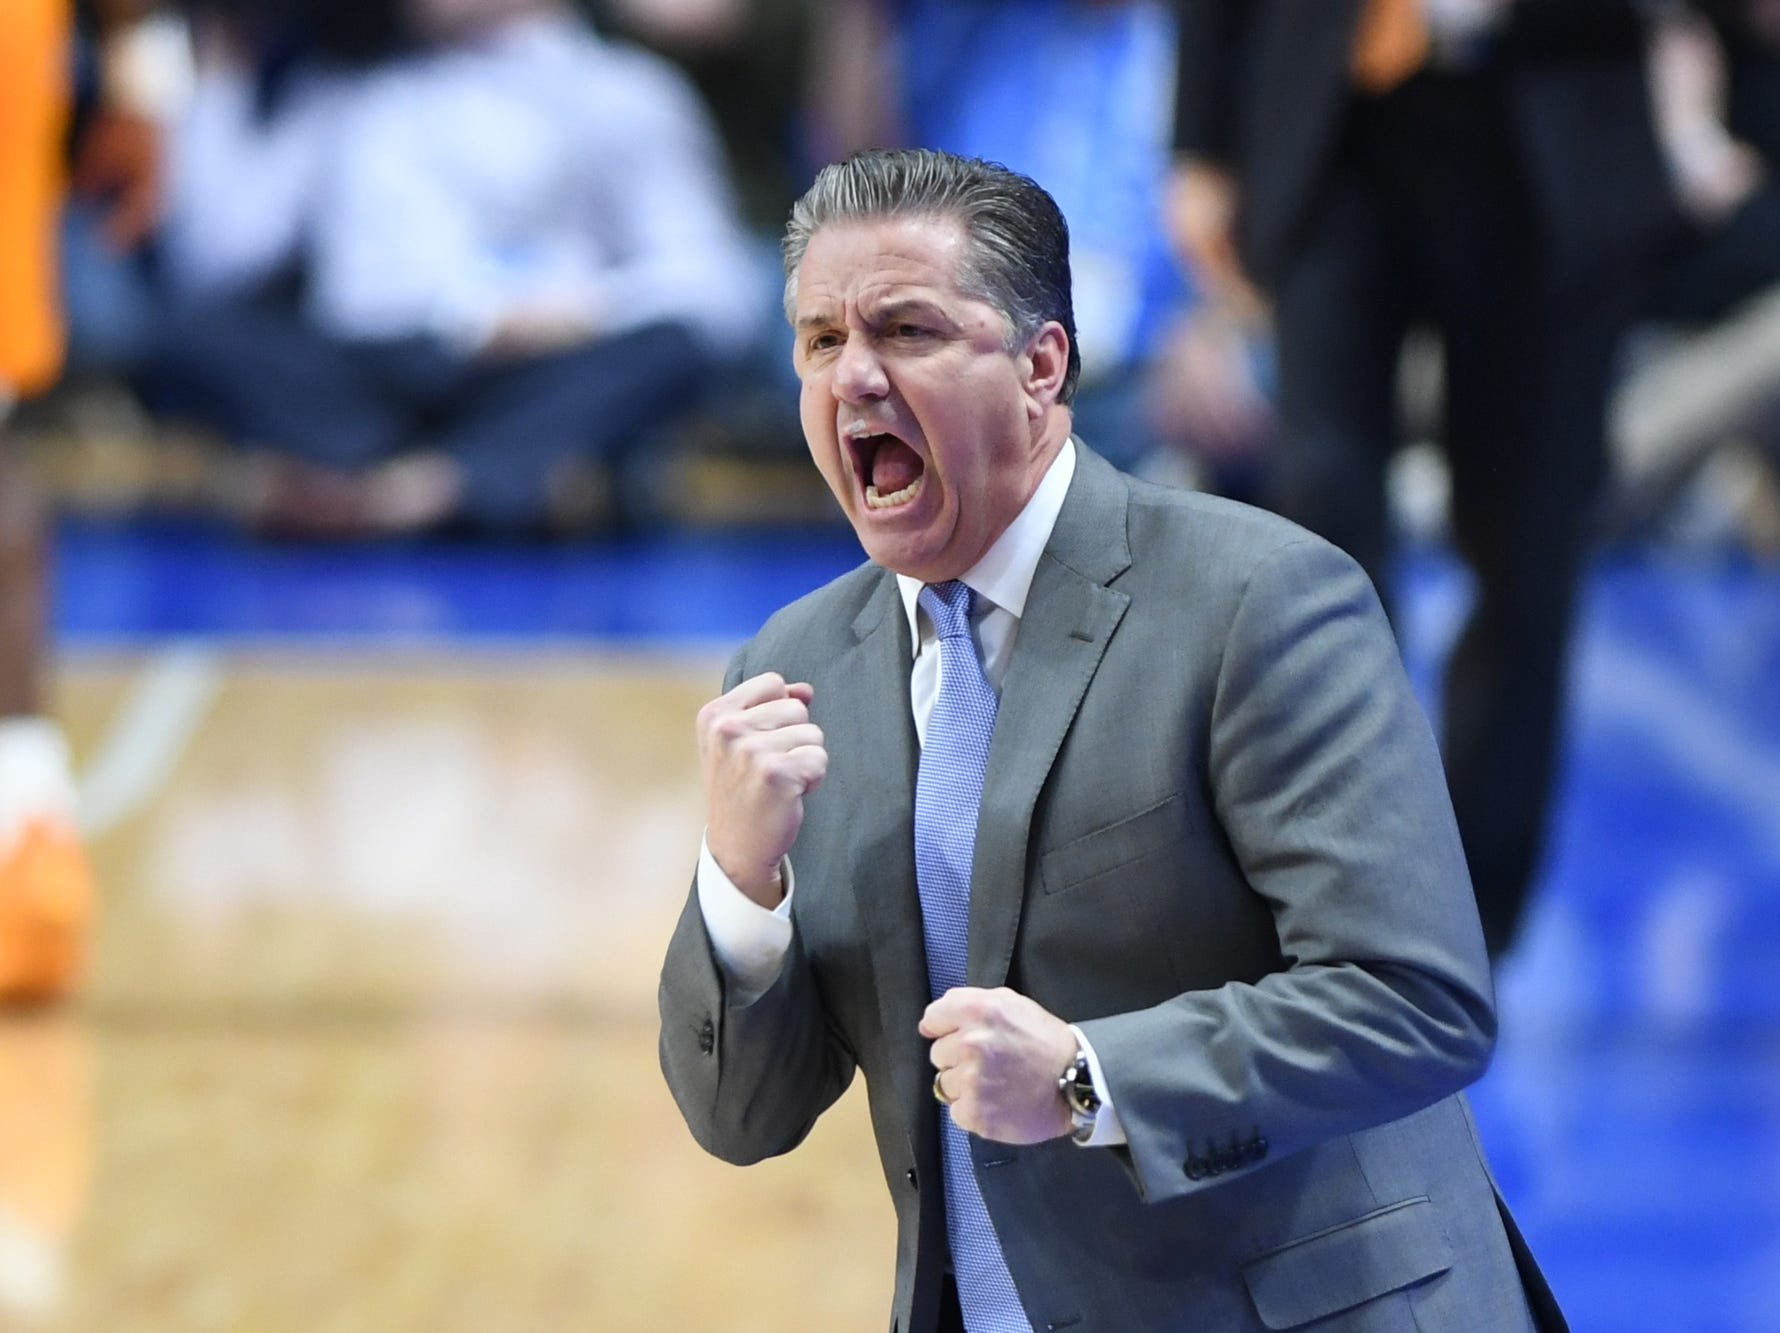 UK head coach John Calipari during the University of Kentucky mens basketball game against Tennessee at Rupp Arena in Lexington, Kentucky on Saturday, February 16, 2019.